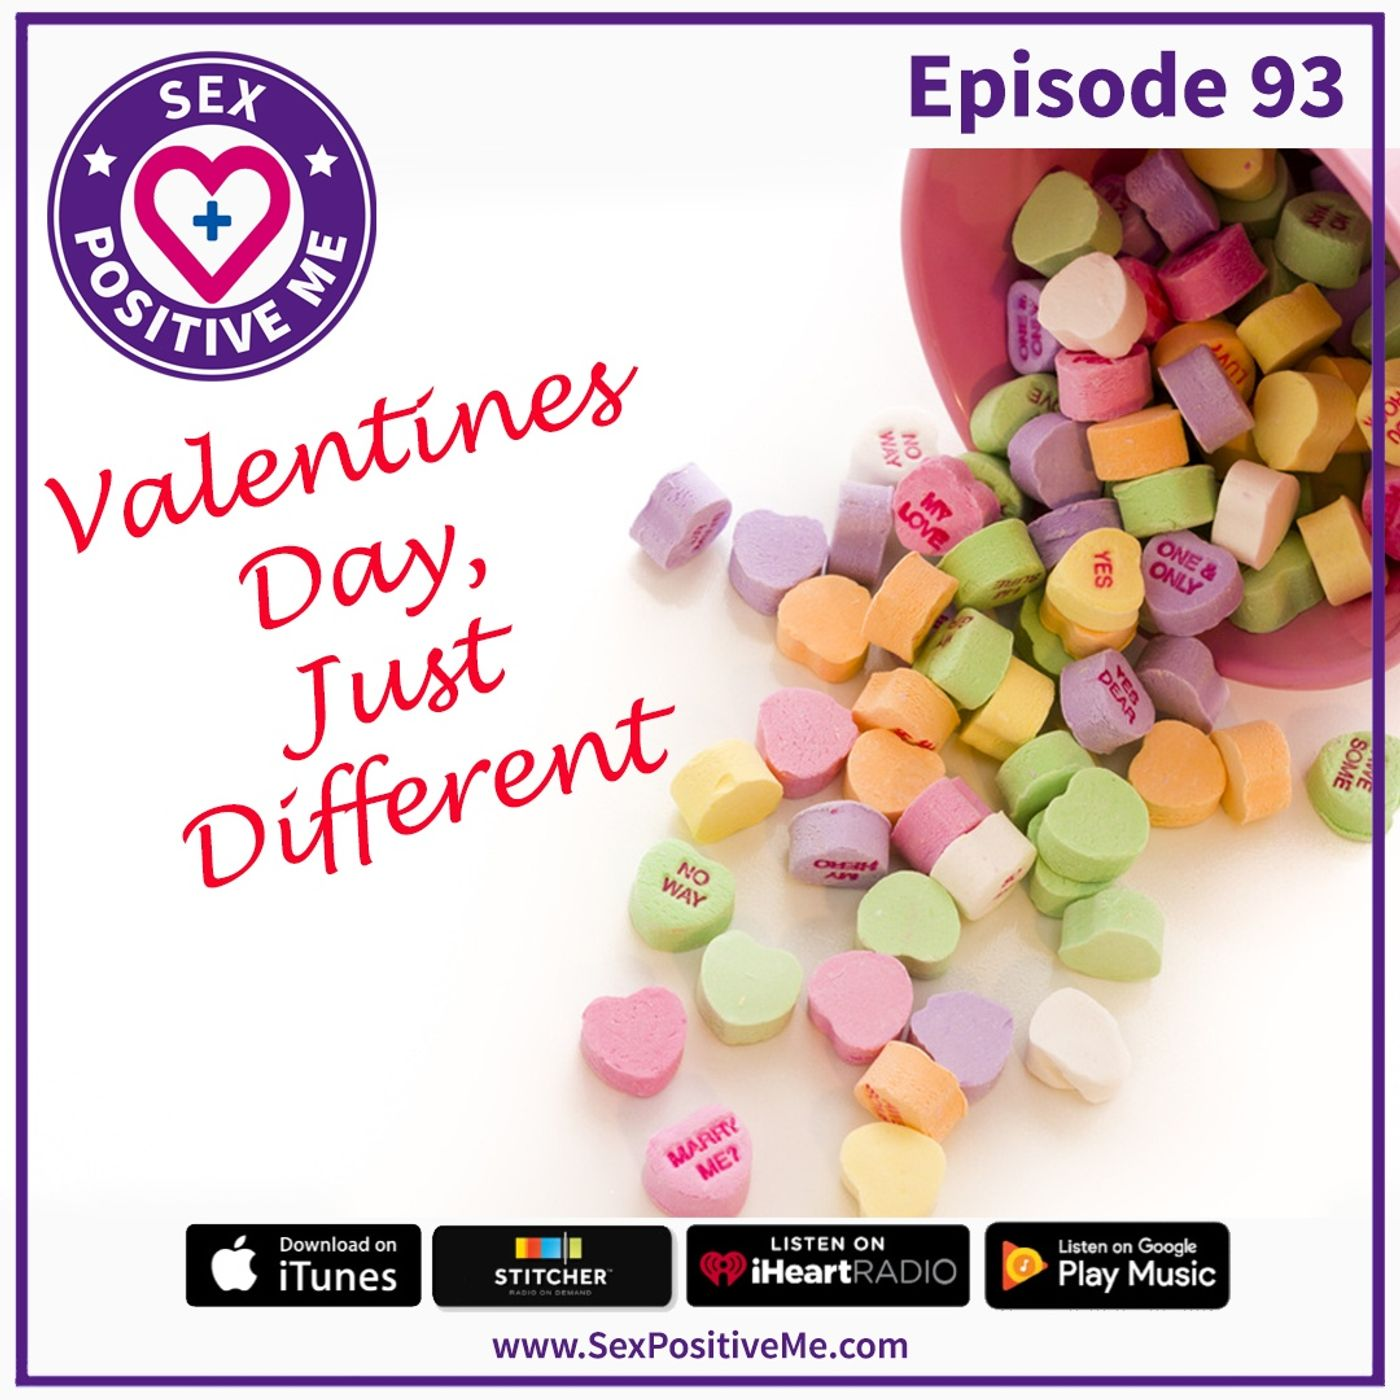 Sex Positive Me - E93: Valentine's Day Just Different